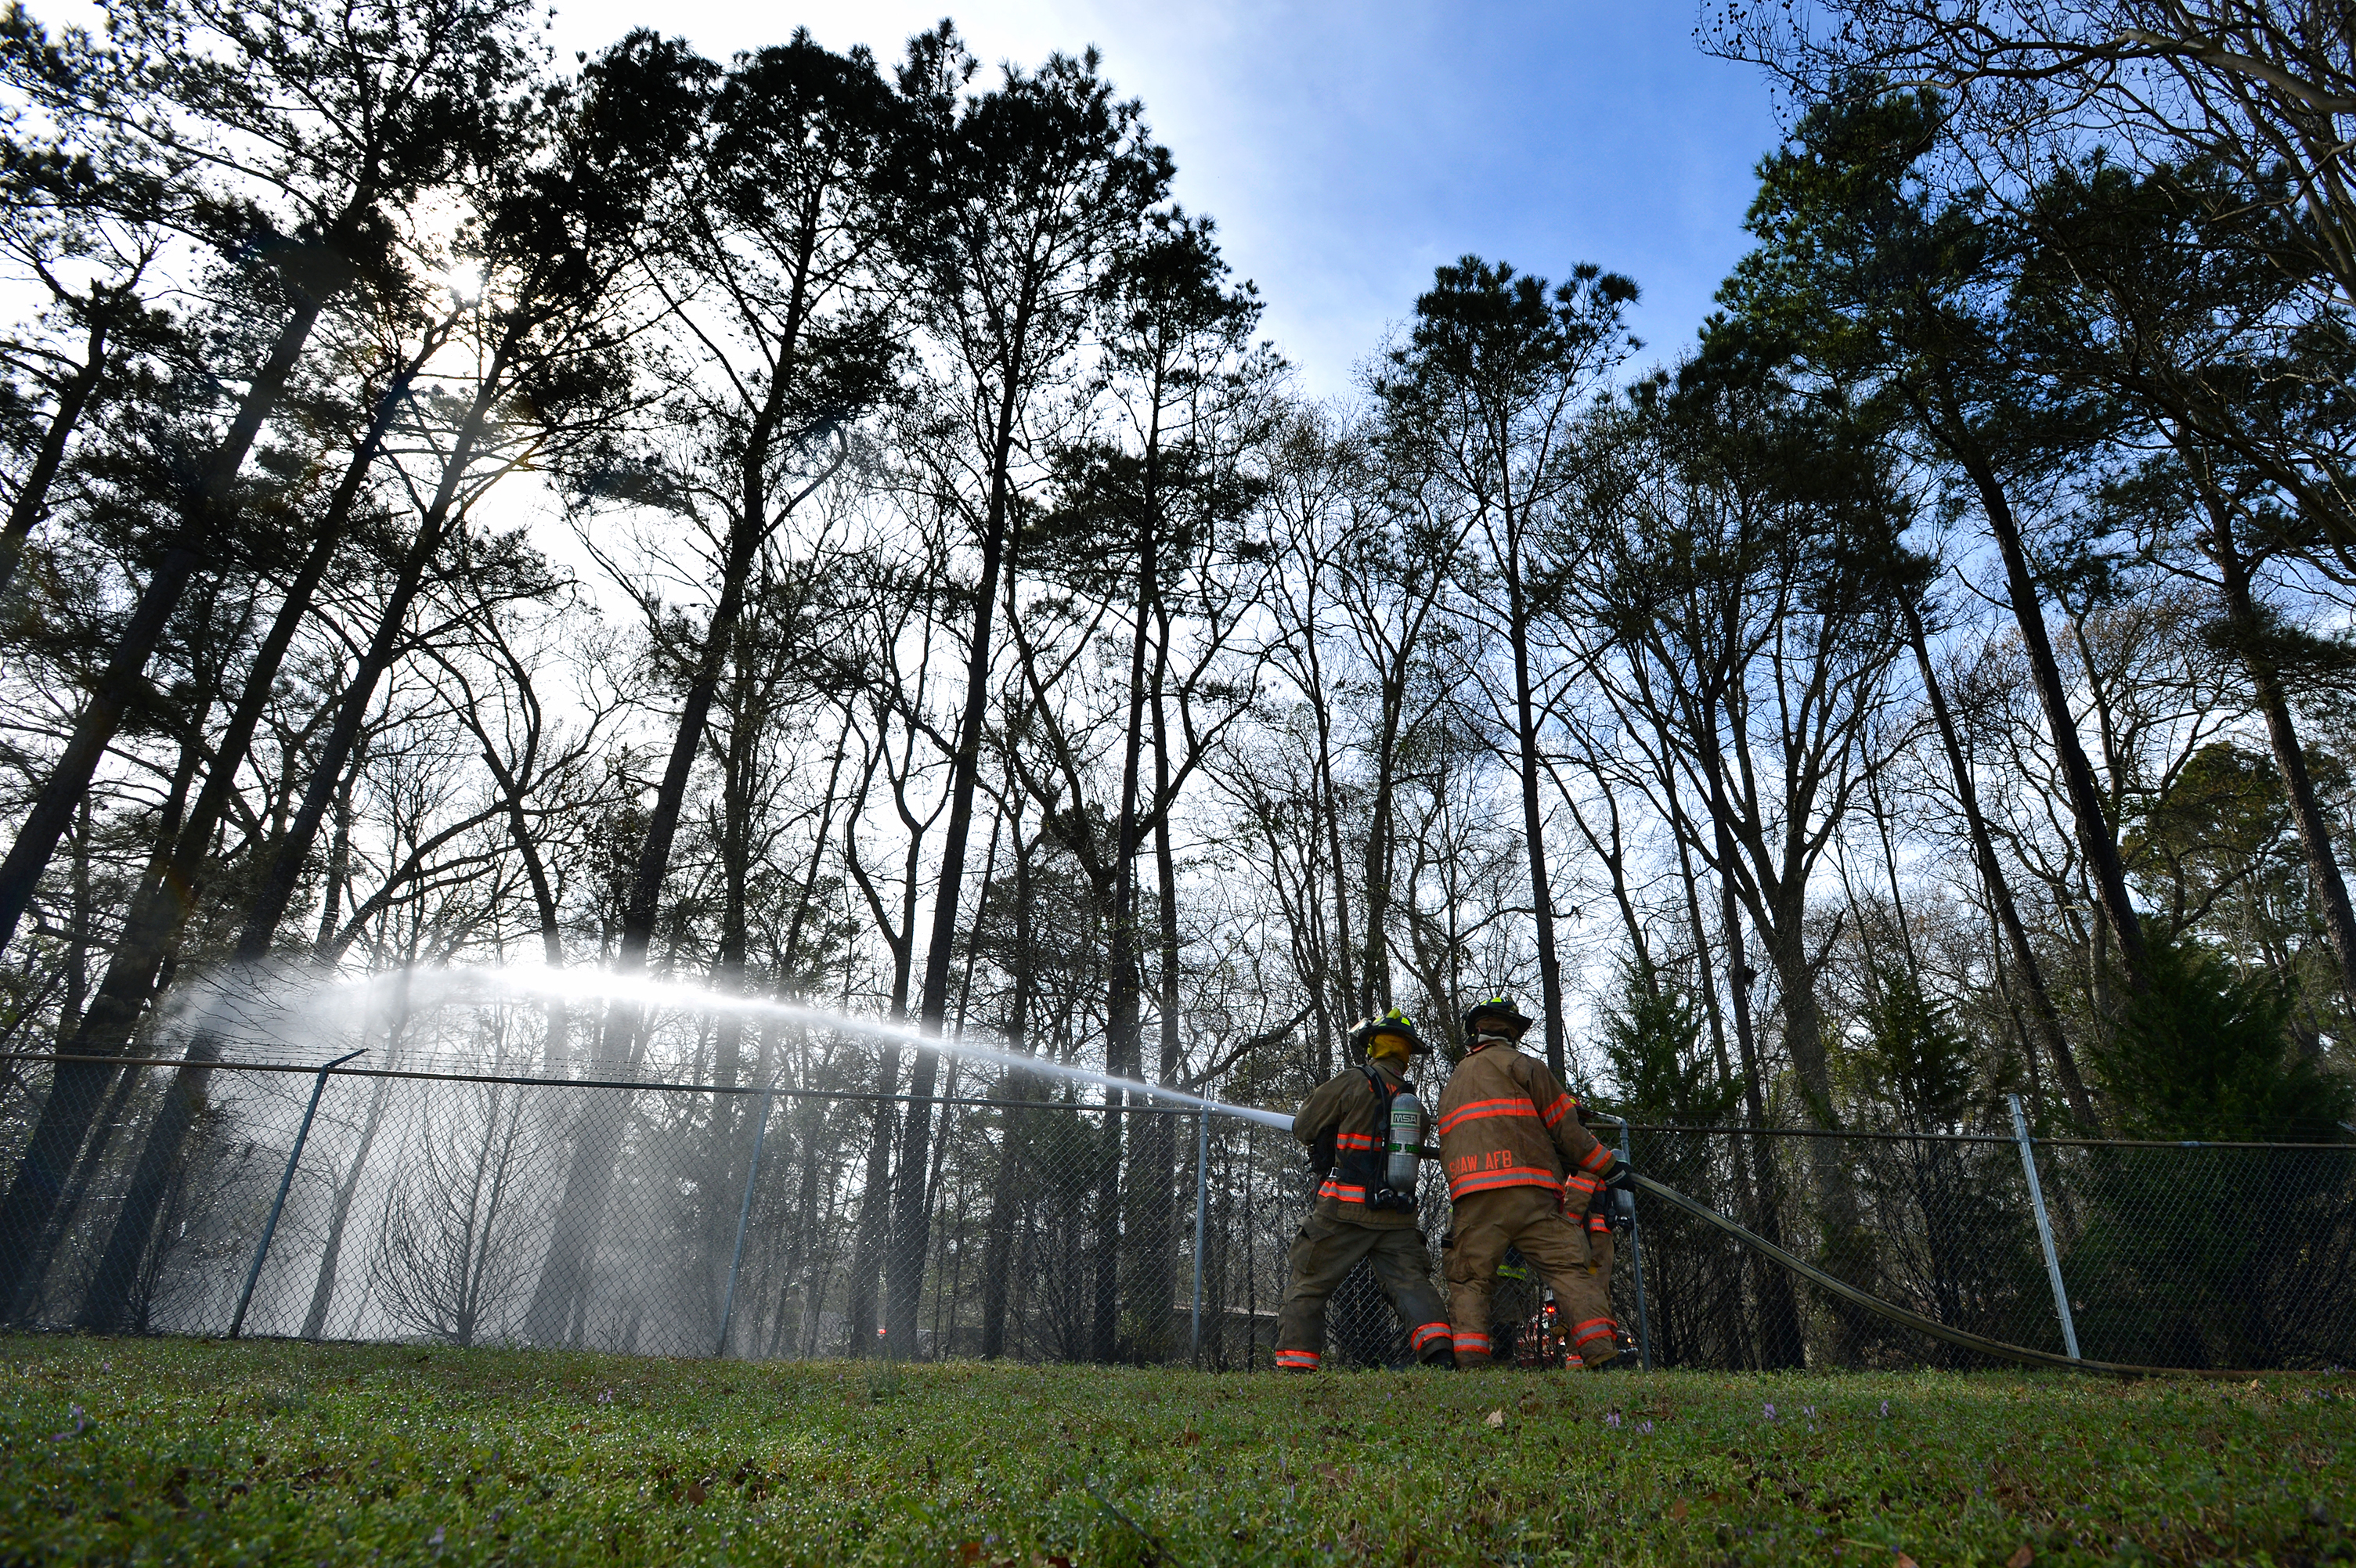 Primed: Shaw fire department takes action > Shaw Air Force